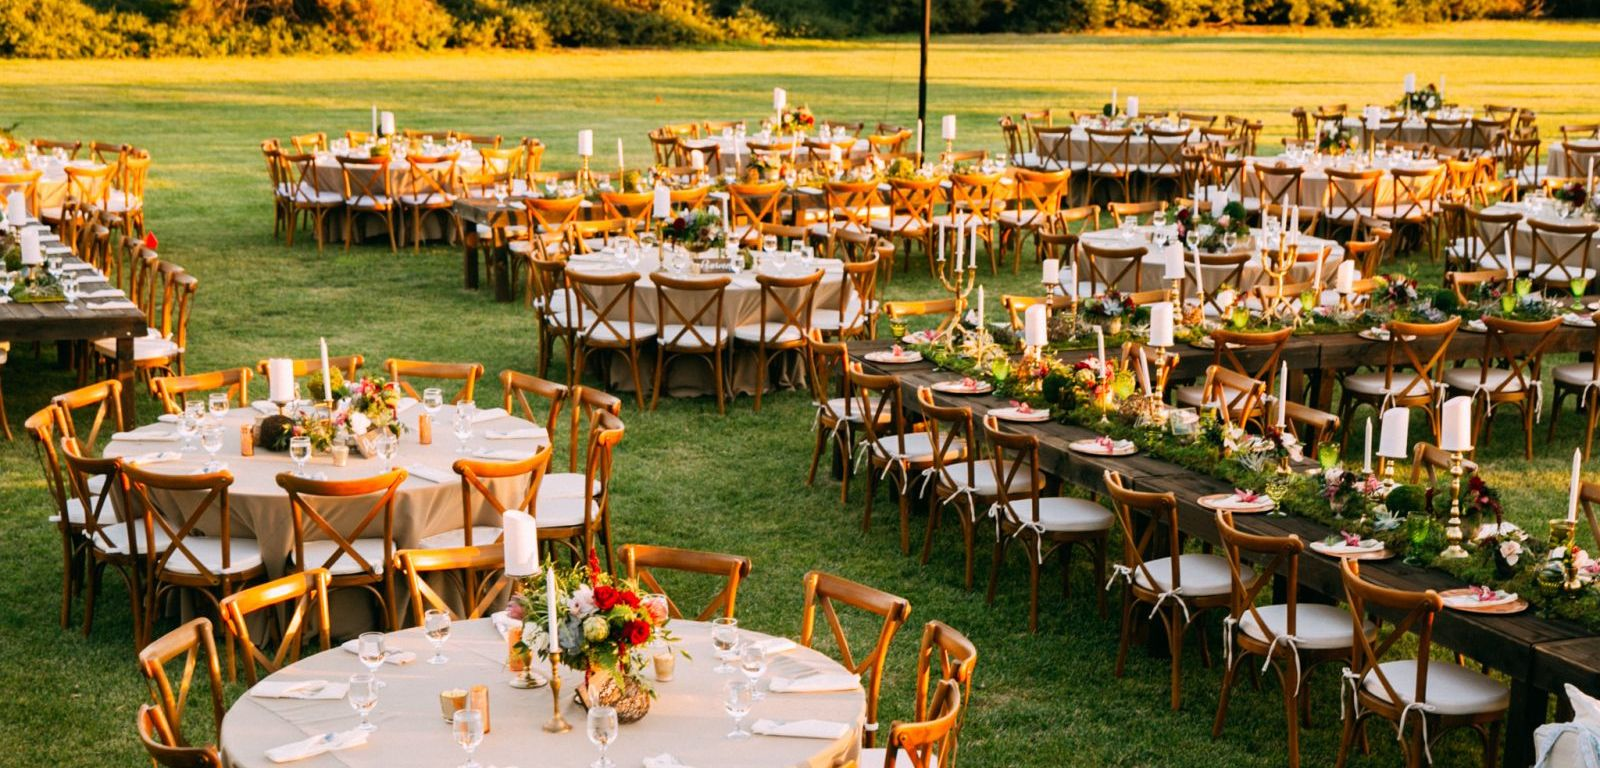 Indian wedding reception at Ethereal Open Air Resort.